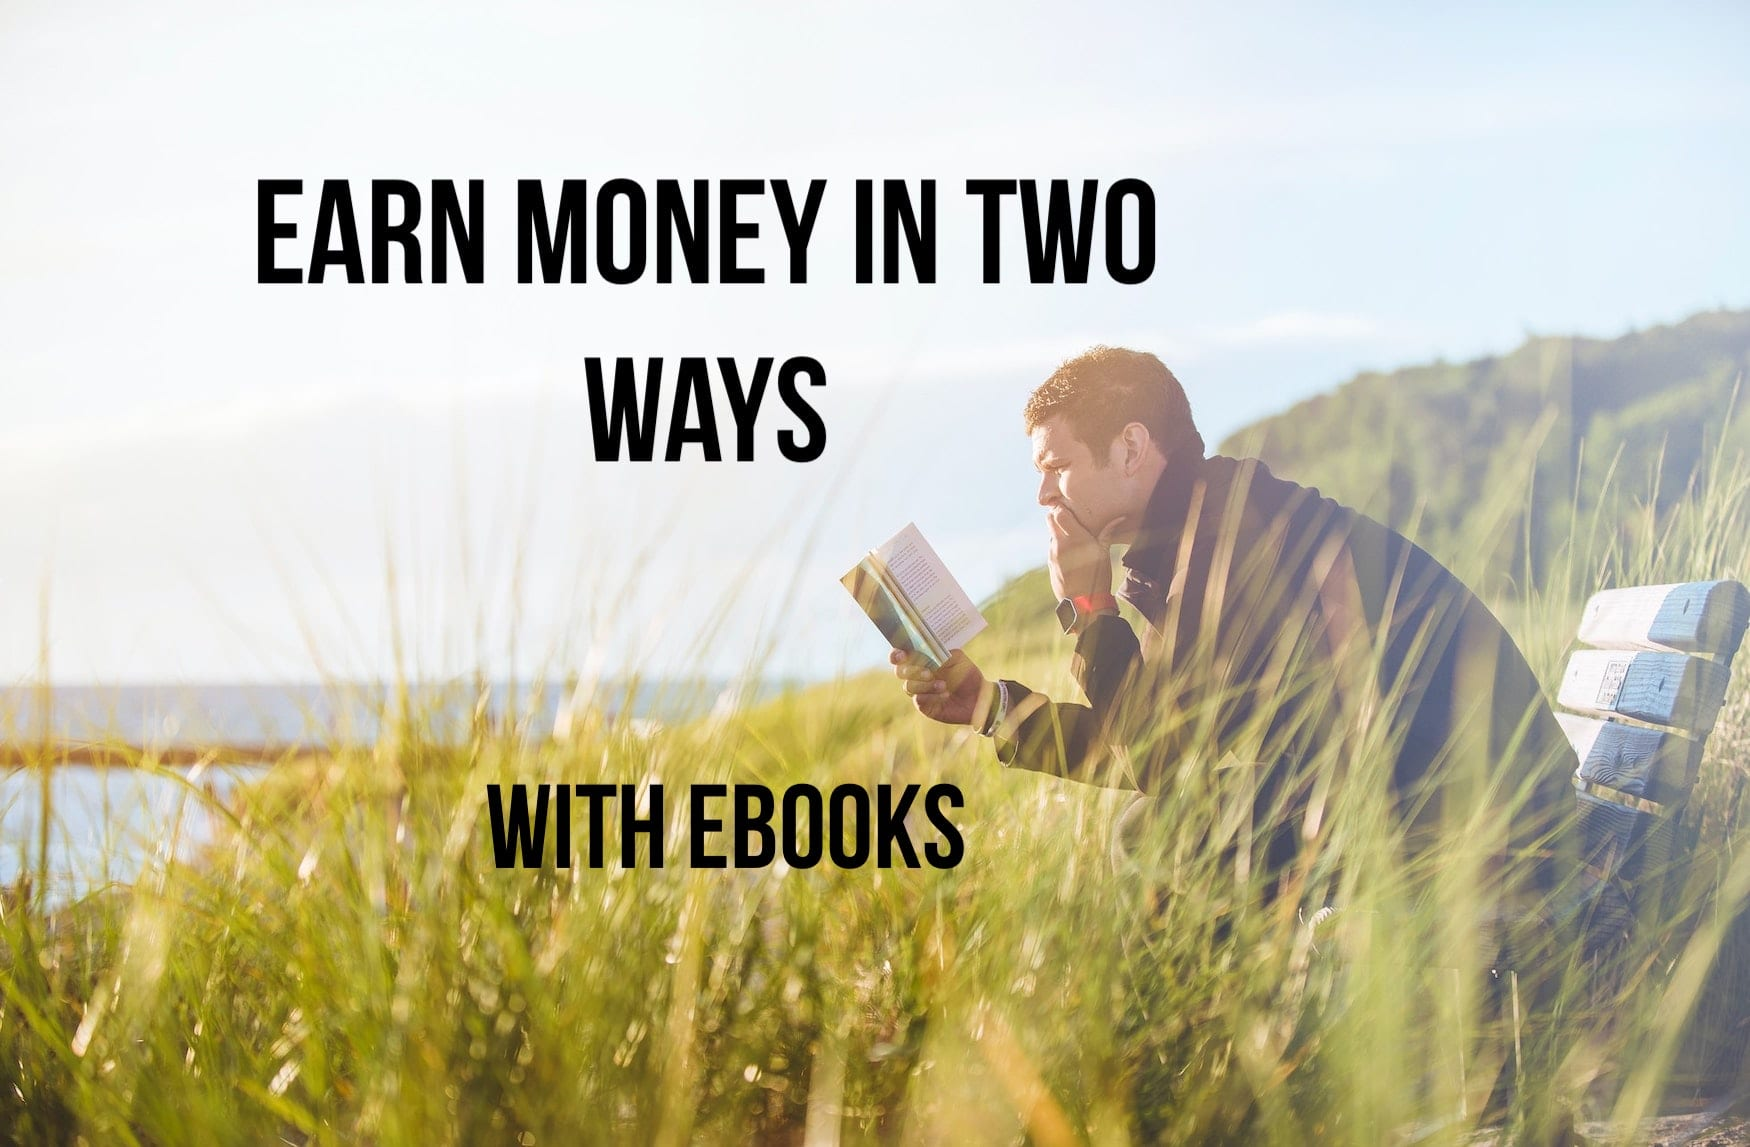 earn money with ebooks